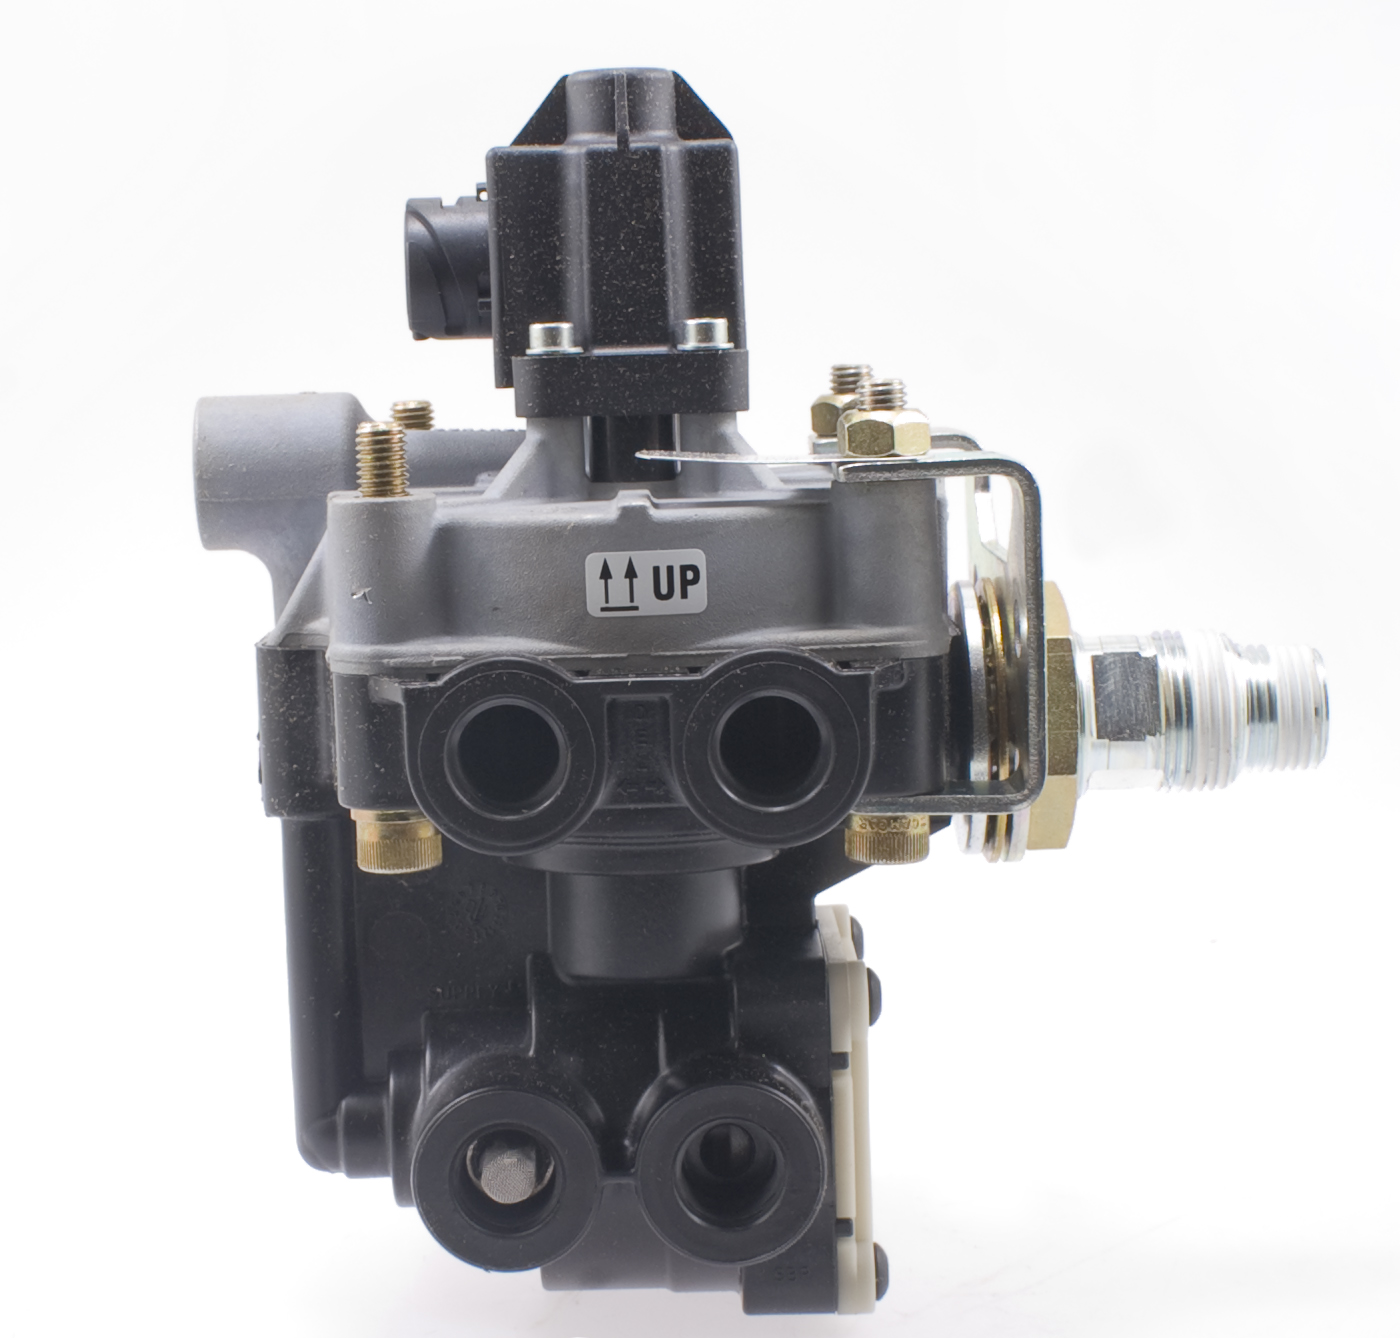 AL430624 - ABS Valve - Replaces AL430623 - Haldex product on ford abs wiring diagram, sterling truck parts diagram, 7 pin rv wiring diagram, gm abs wiring diagram, meritor abs wiring diagram, allison automatic transmission wiring diagram, freightliner rv wiring diagram, international abs wiring diagram, bendix brake diagram, kenworth air line diagram, bendix abs wiring diagram, utility trailer abs wiring diagram, 1997 bmw wiring diagram, seven wire trailer plug diagram, mercedes abs wiring diagram, wabco air dryer diagram, semi-trailer light wiring diagram, bendix air governor diagram, freightliner air tank diagram, brake system diagram,